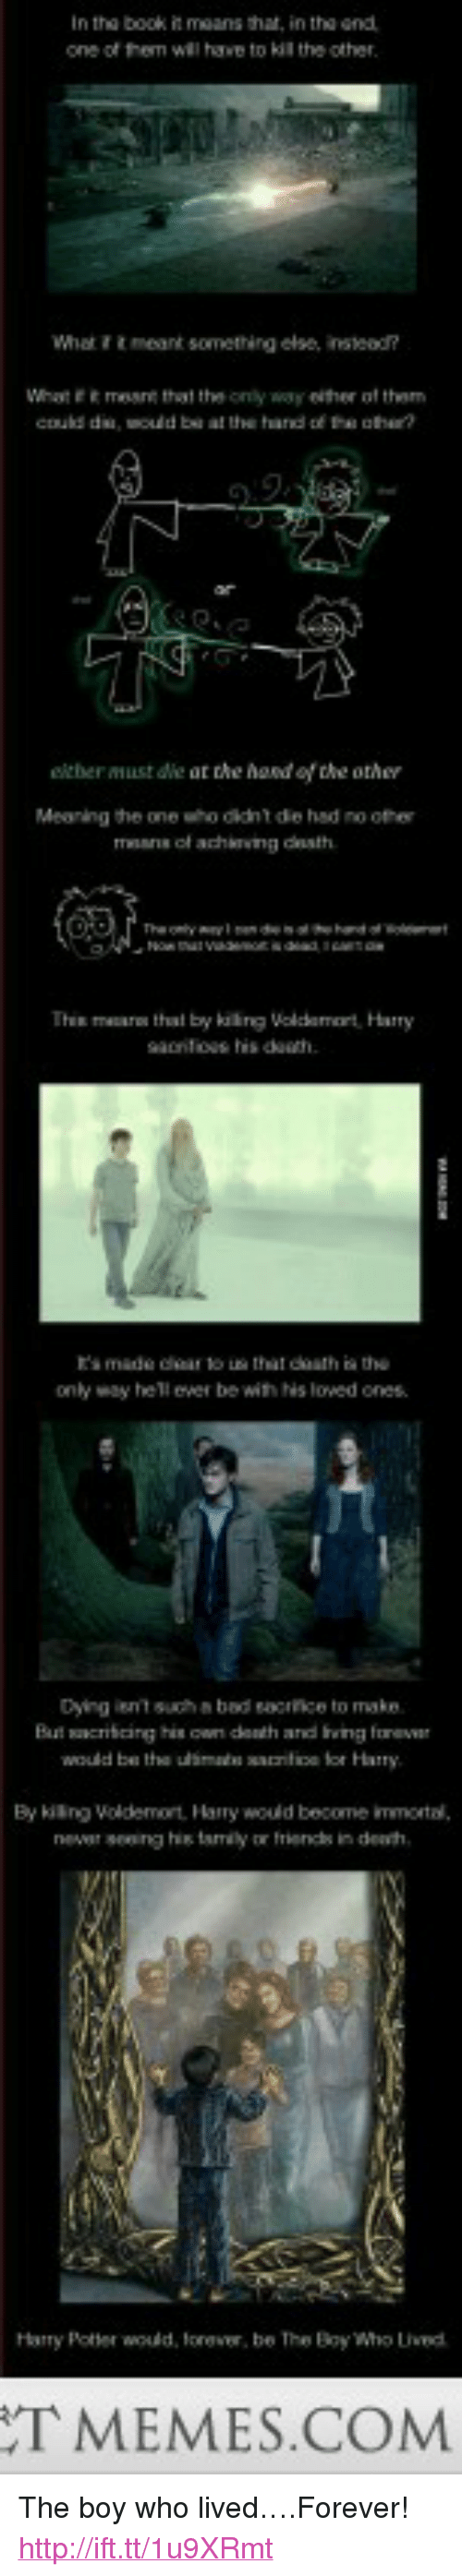 """Bad, Harry Potter, and Forever: one of them  will have to kil  the other  What ttmeant something else, insead  What e  mese tht the only way either of them  either must dle at the hand of the other  Mearning the one sho didnt de hed no ofher  Thin mars that by killing Volcdamort Harry  ts made cear to  only way hell ever be with Ns lowed ones  that doath ia the  Dying ient such & bad sacrifice to make  But cribcing his own onth and Iiving fone  would be tha ulsm fice or Harry  By killing Voldemort, Hary wold become immortal  nevar seeing hi tamly or frienchs in deh  Harry Potter wold, lorever, be The BoyWho Led  TMEMES.COM <p>The boy who lived&hellip;.Forever! <a href=""""http://ift.tt/1u9XRmt"""">http://ift.tt/1u9XRmt</a></p>"""